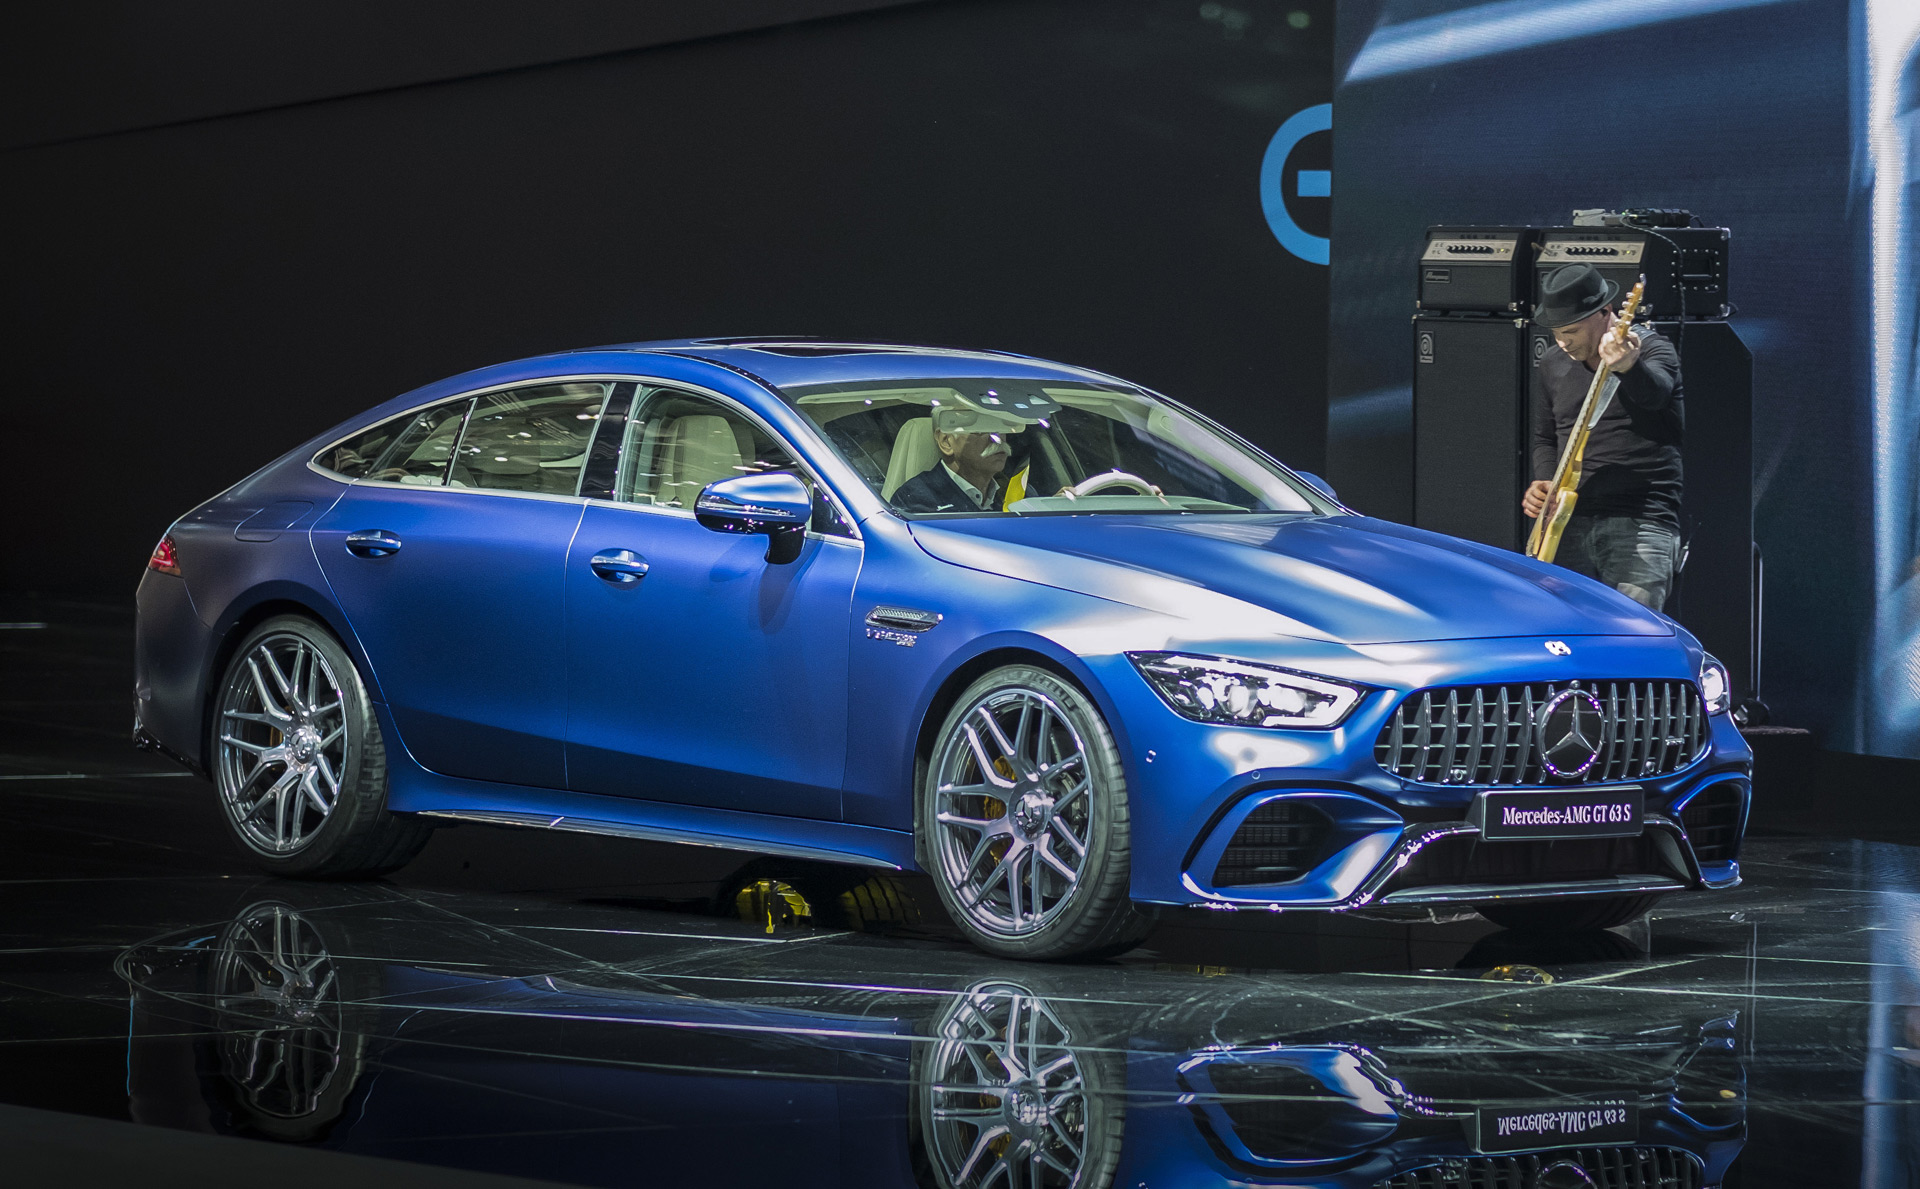 2019 mercedes amg gt 4 door coupe ready to challenge the porsche panamera. Black Bedroom Furniture Sets. Home Design Ideas